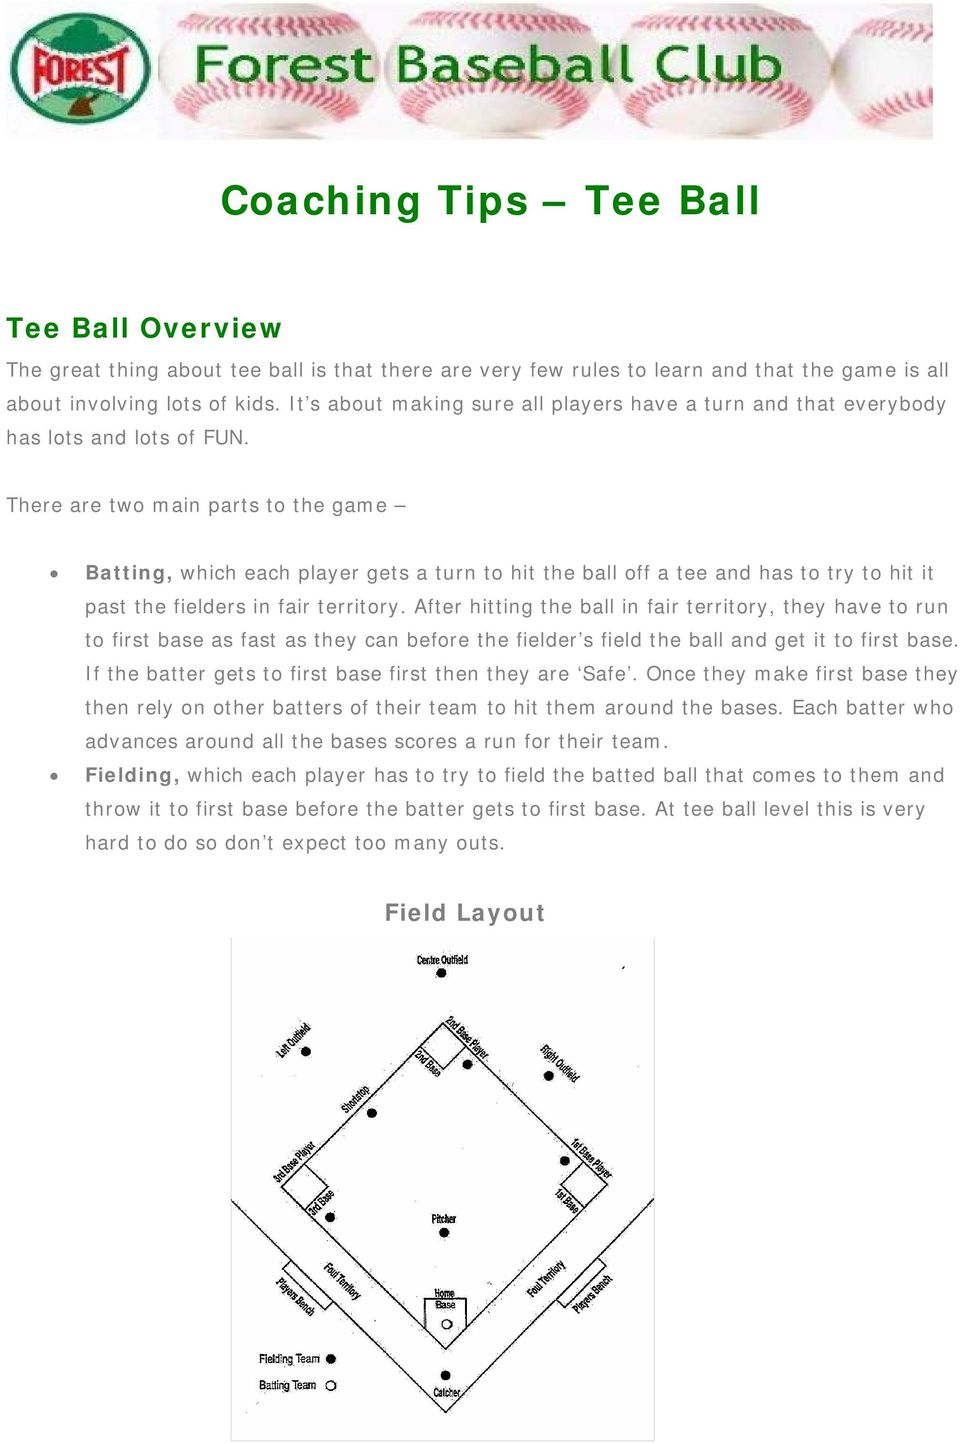 There are two main parts to the game Batting, which each player gets a turn to hit the ball off a tee and has to try to hit it past the fielders in fair territory.